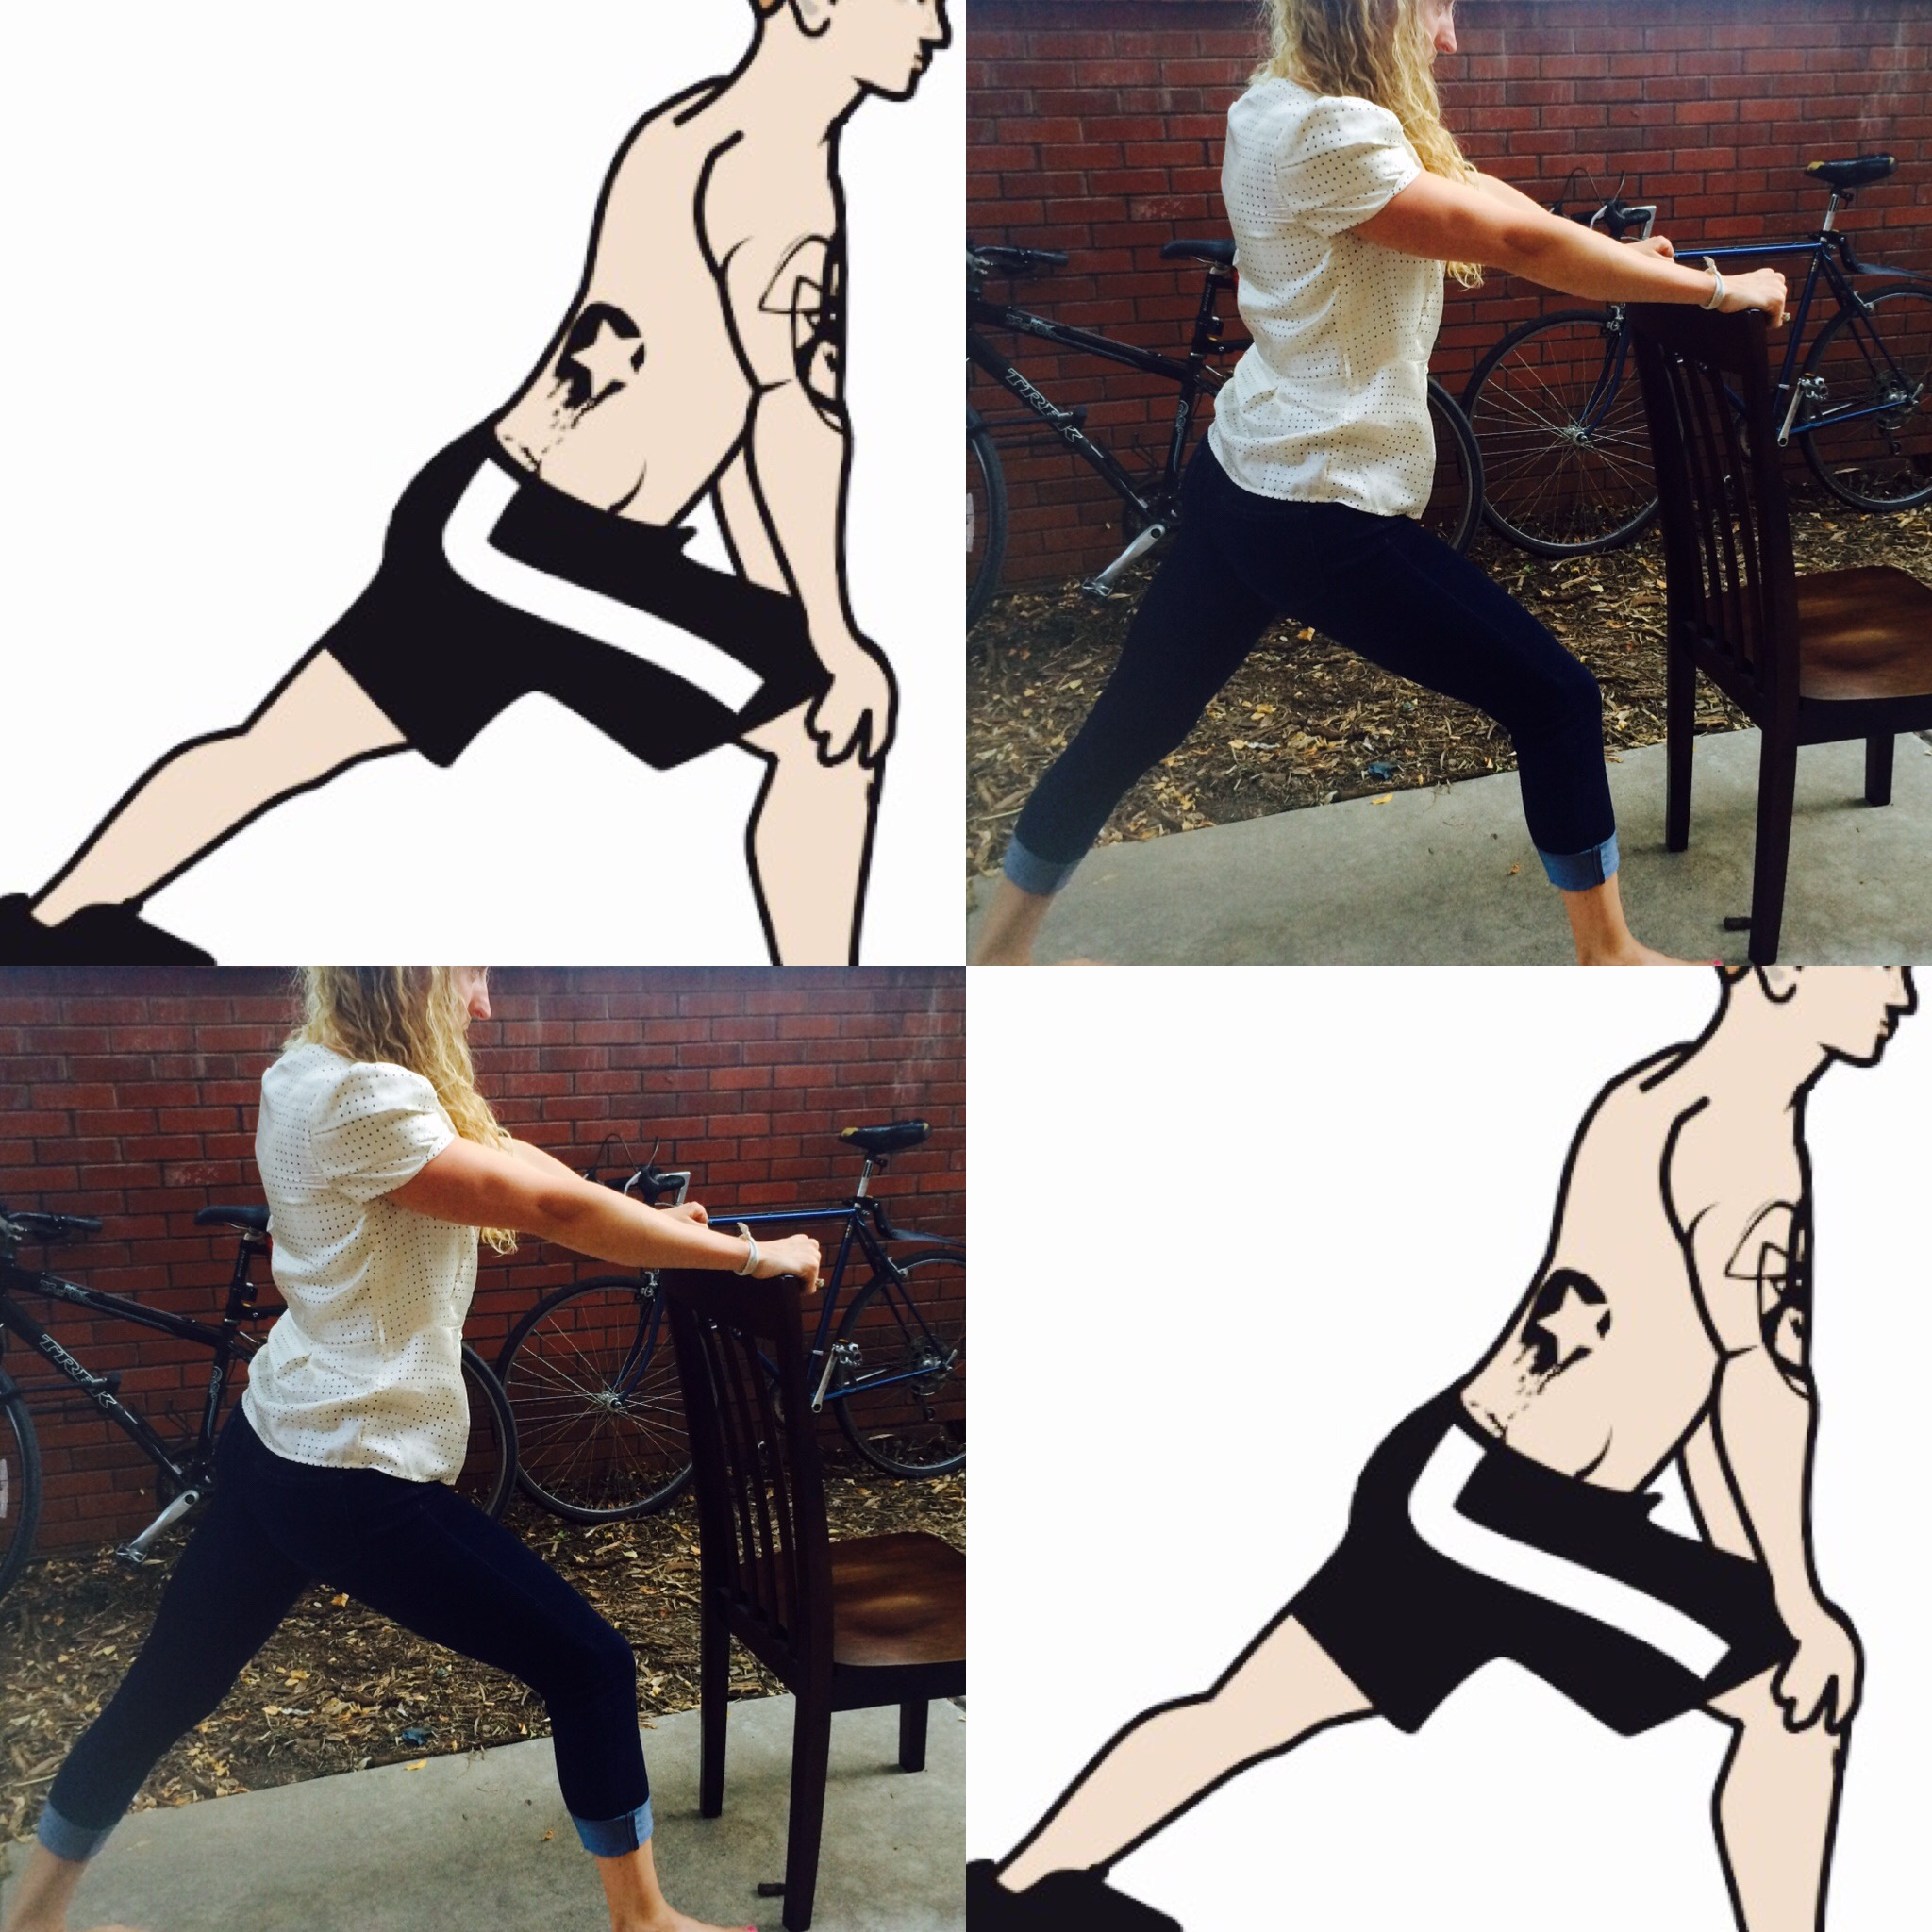 From a stride stance, lift your back heel off the ground; dip hips back and work the heel to the ground, keeping a straight knee. Hold here for 30 seconds to two minutes before switching legs. Feel free to use your desk or chair for stability and leverage.